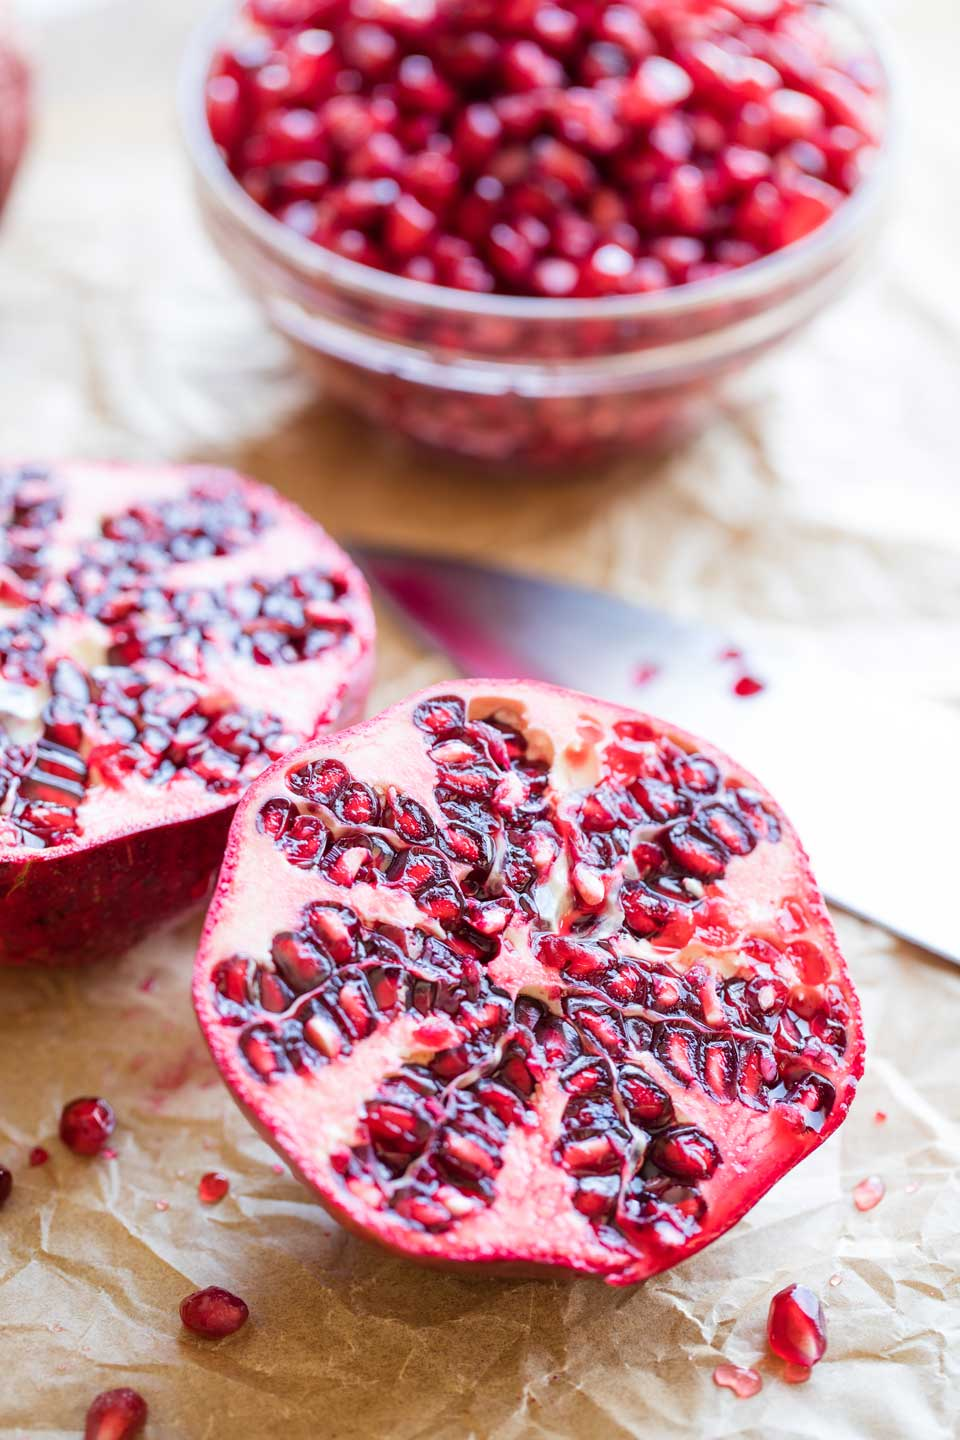 A pomegranate cut horizontally in half, with a bowl full of arils in the background.